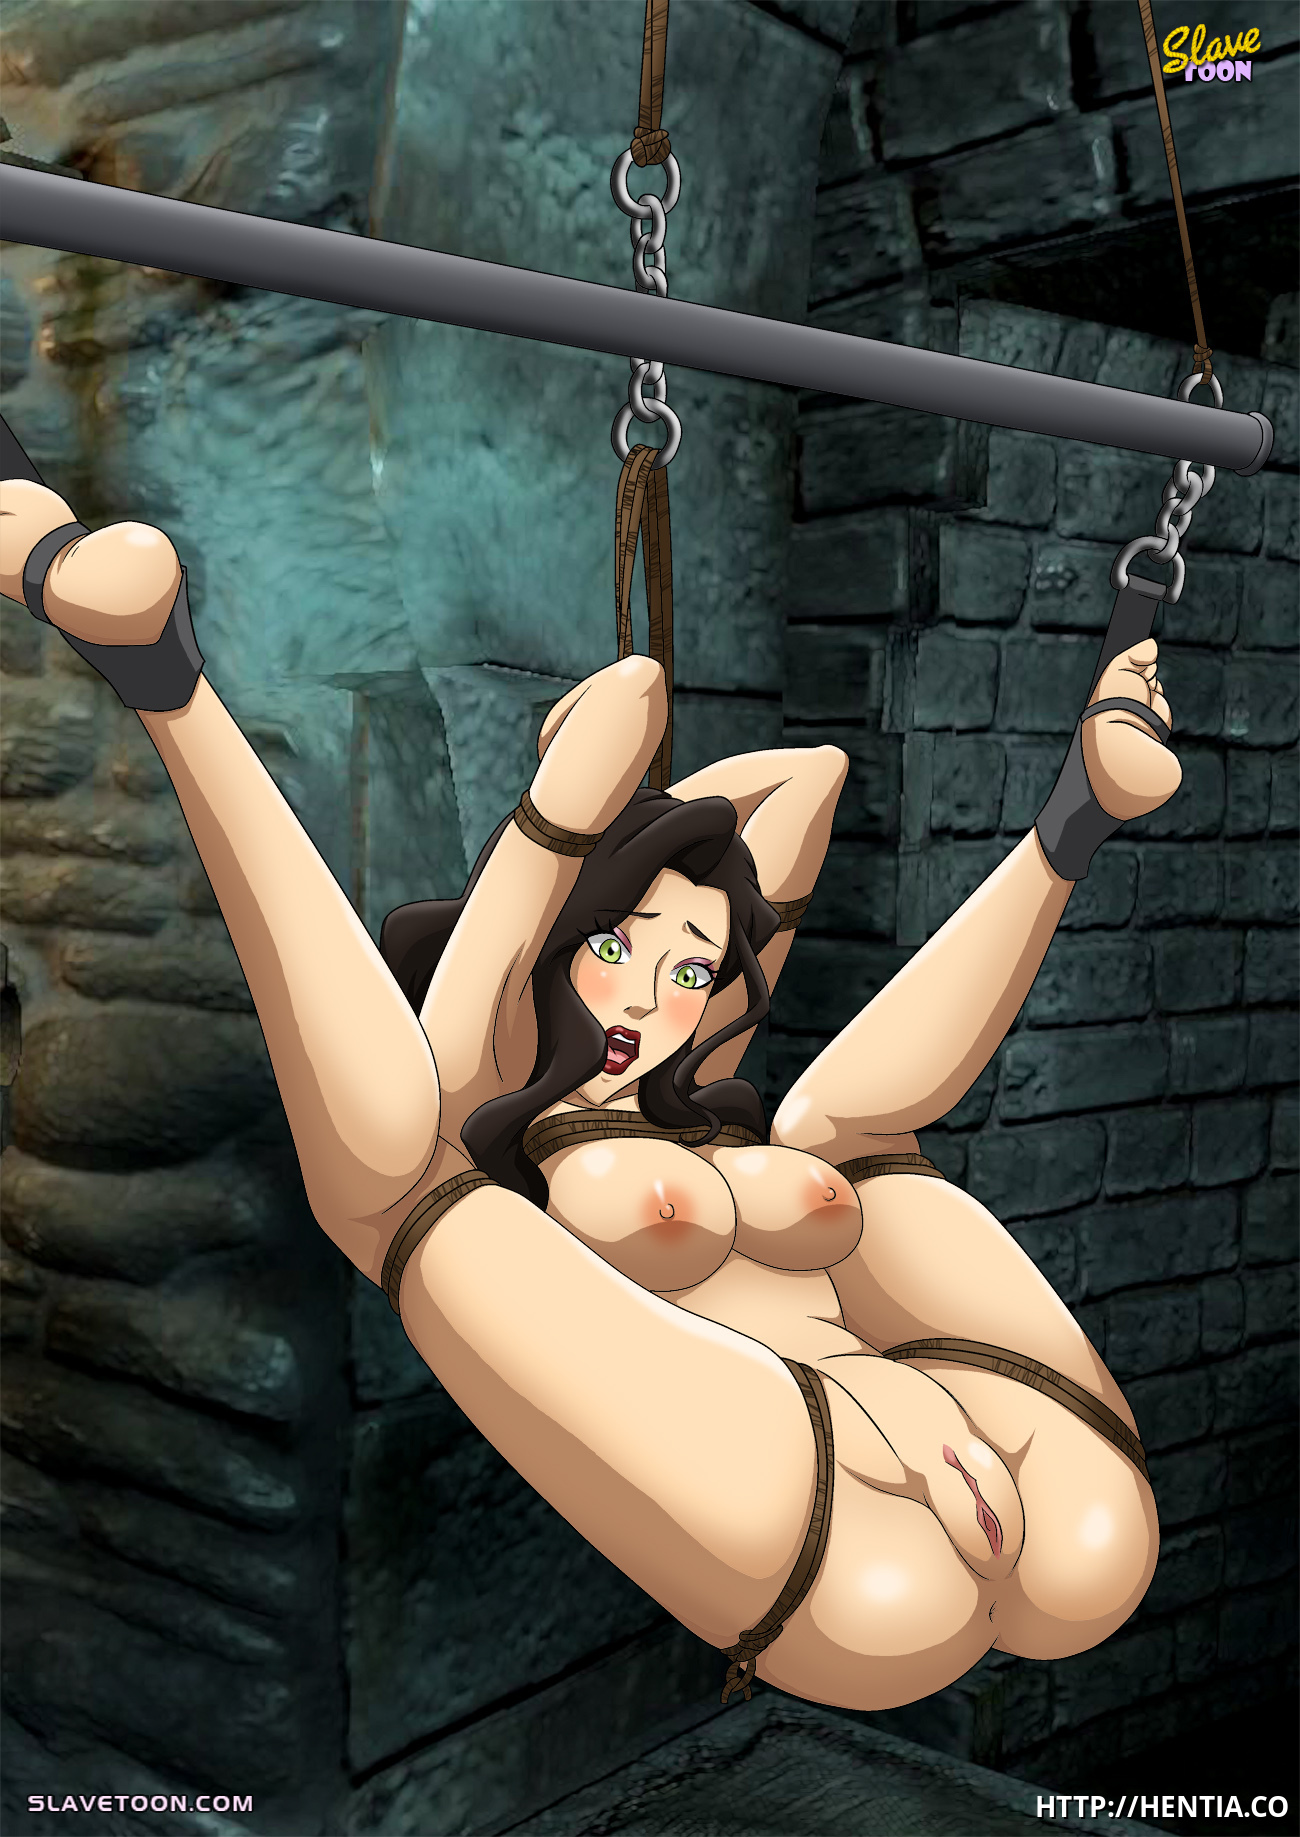 Asami Sato as a sexslave? Don't waste your time!